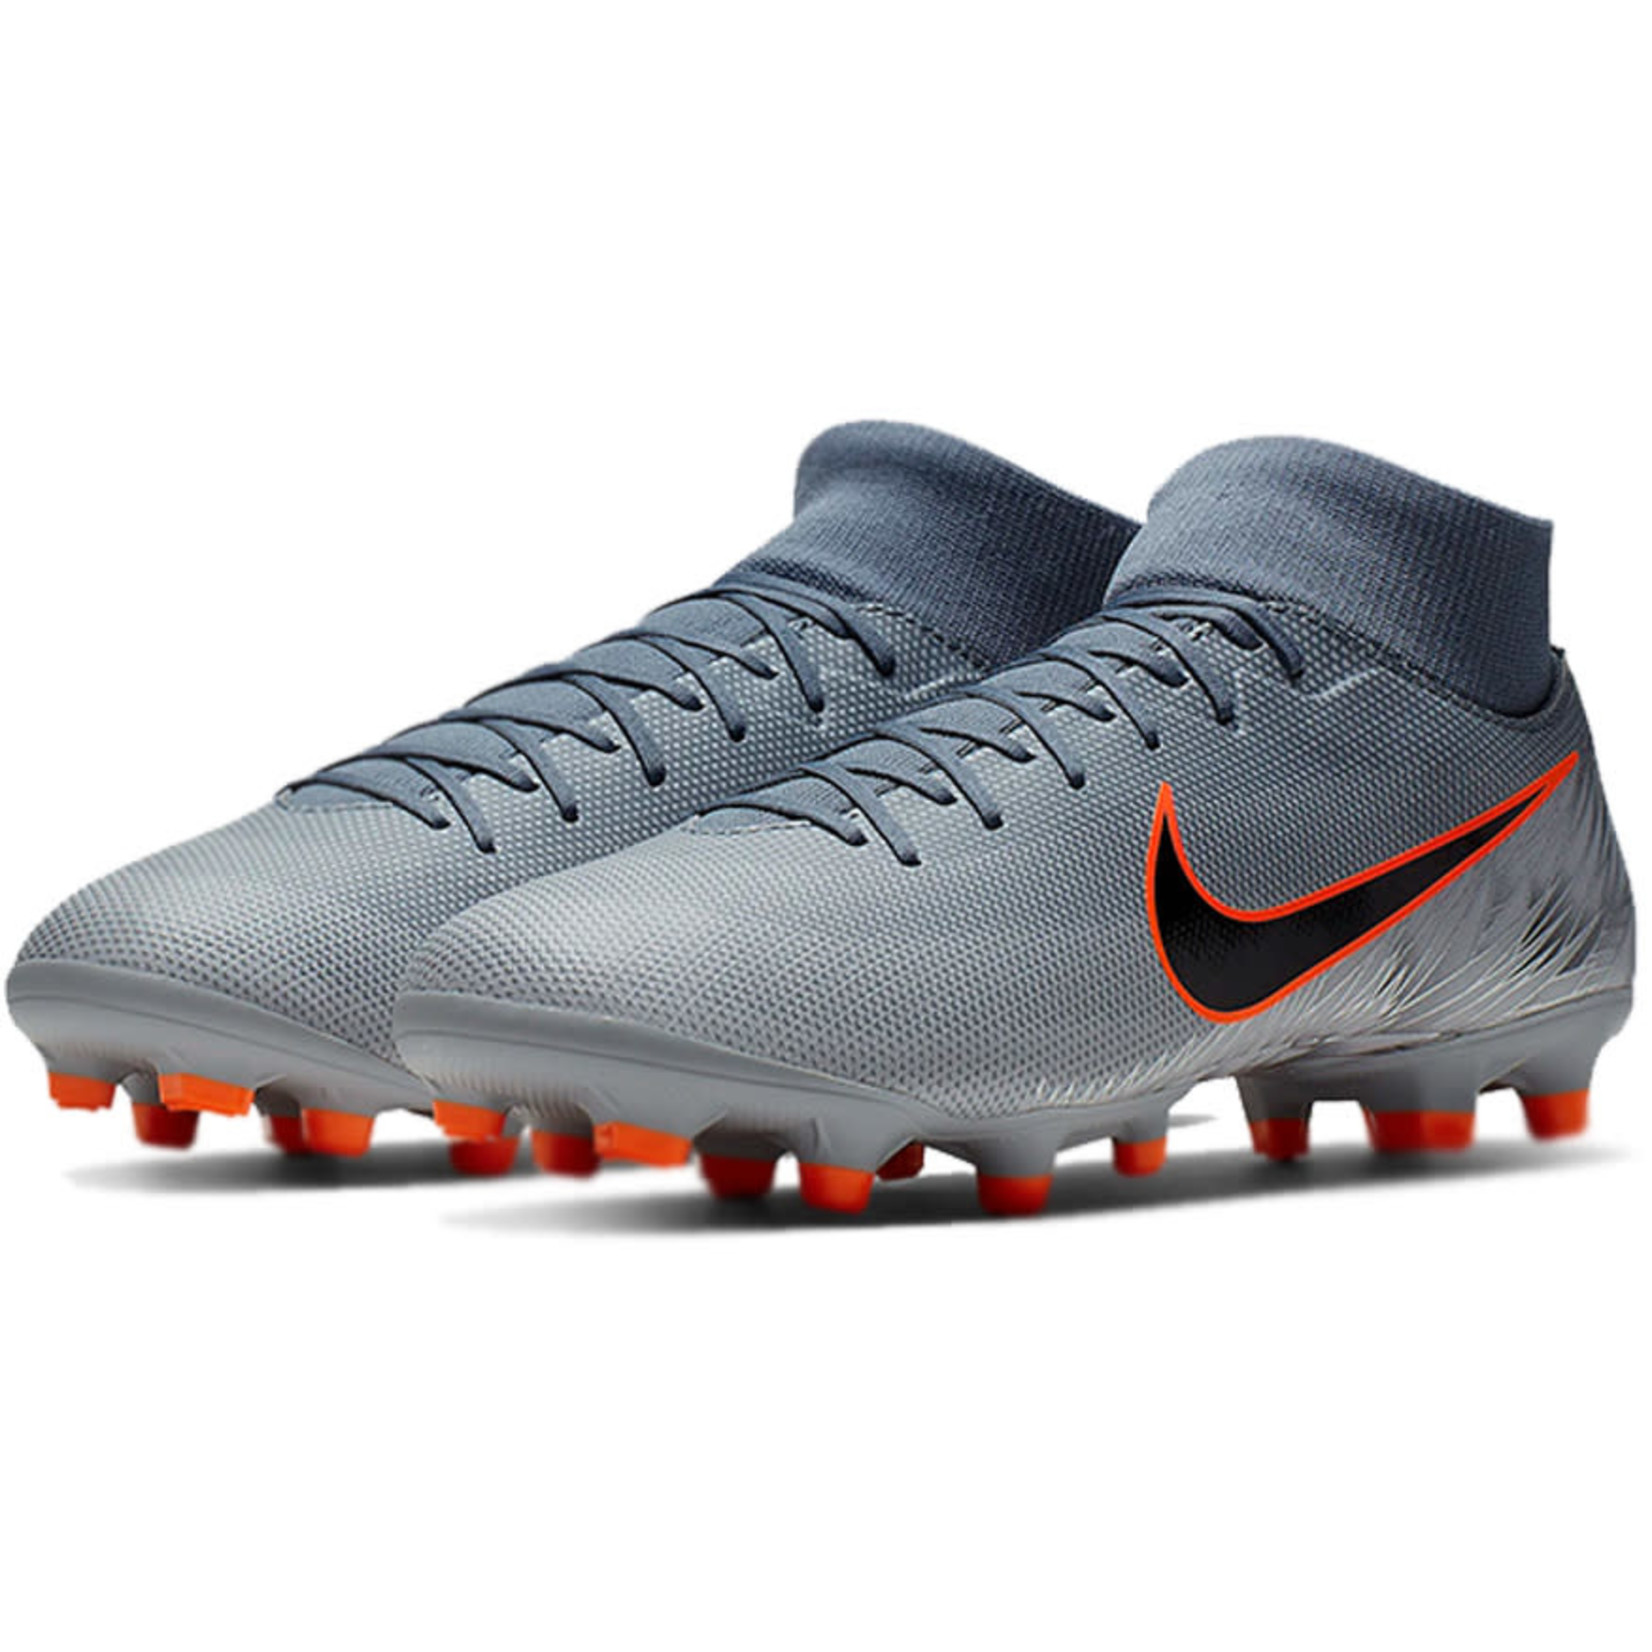 NIKE MERCURIAL SUPERFLY 6 ACADEMY FG/MG (GRAY)